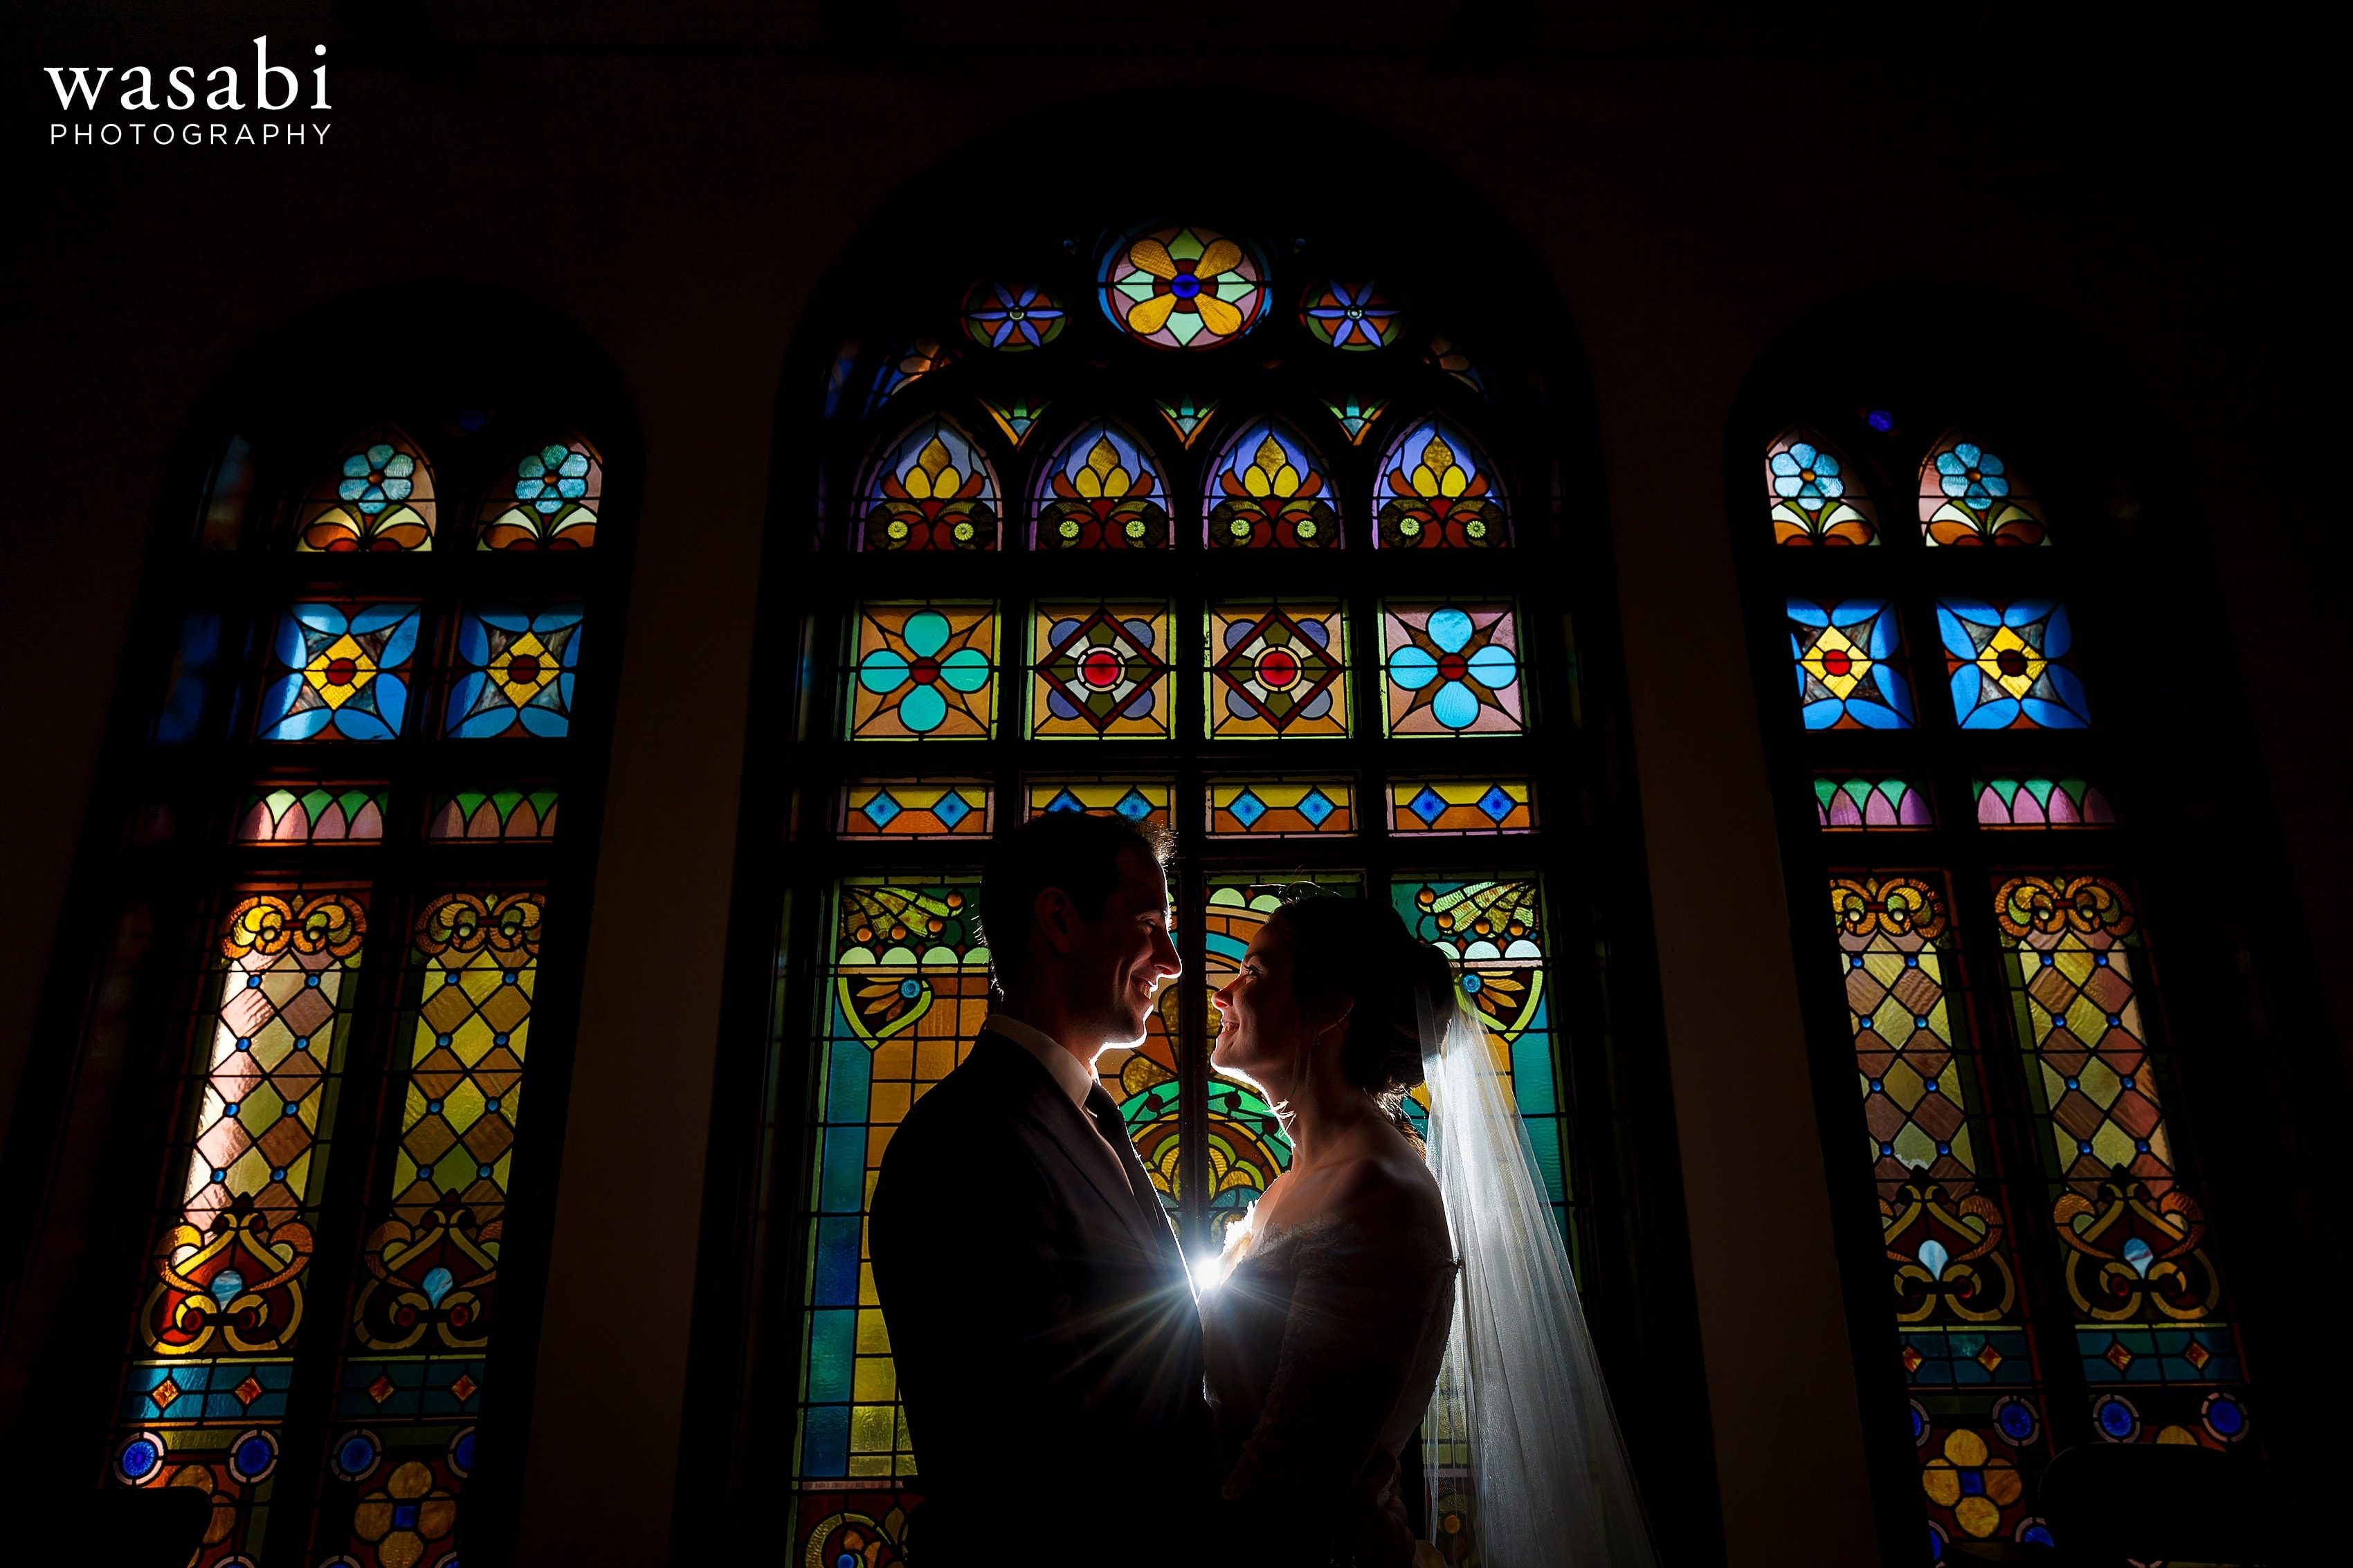 Zoe-and-Justin-pose-for-a-backlit-portrait-in-front-of-the-stained-glass-windows-at-Church-of-Our-Savior-in-Chicago-16